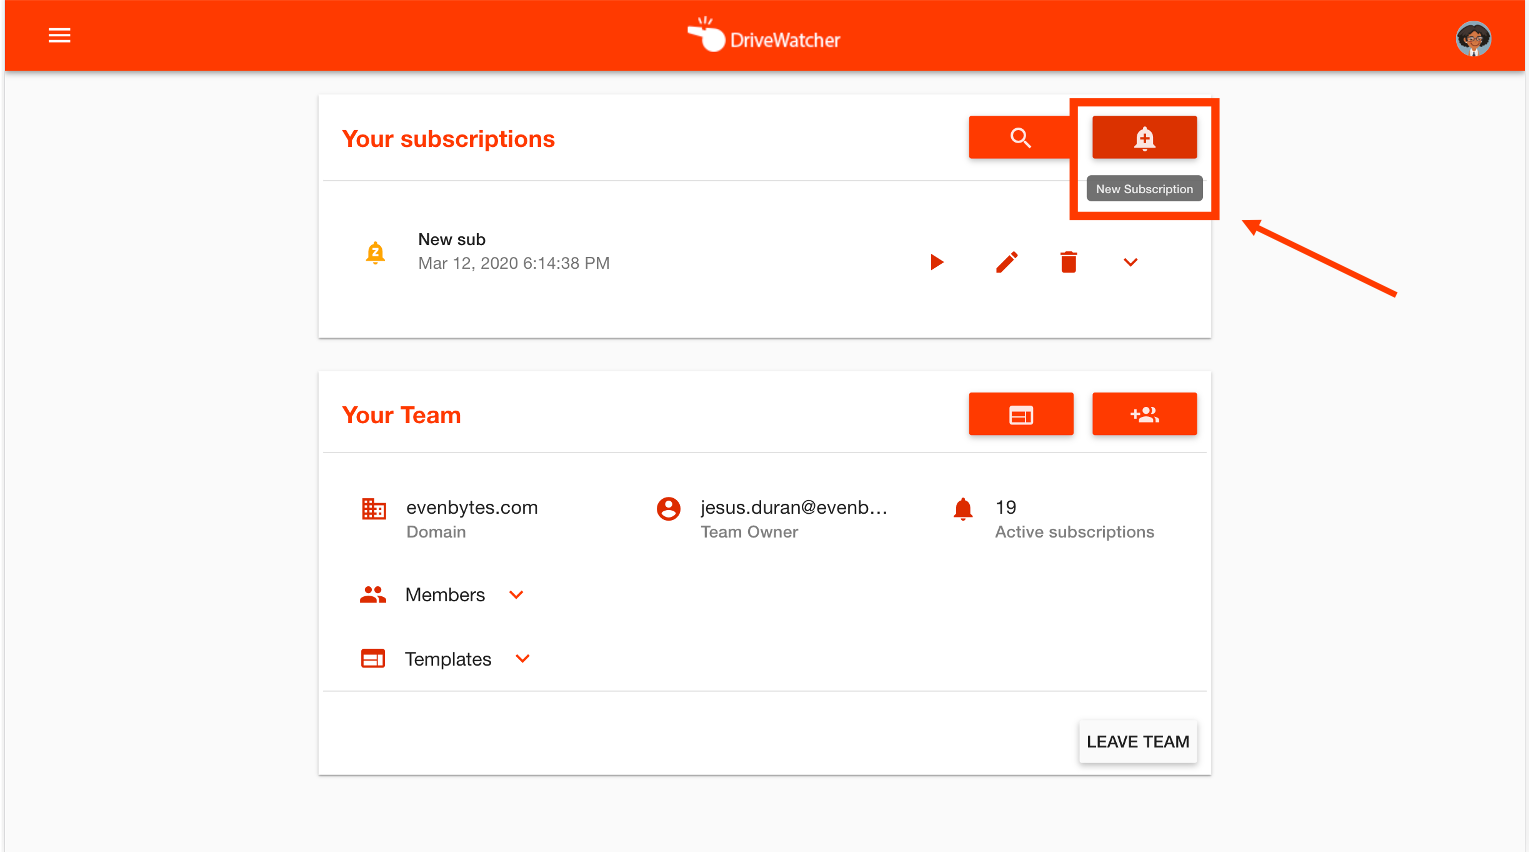 create a new subscription in DriveWatcher